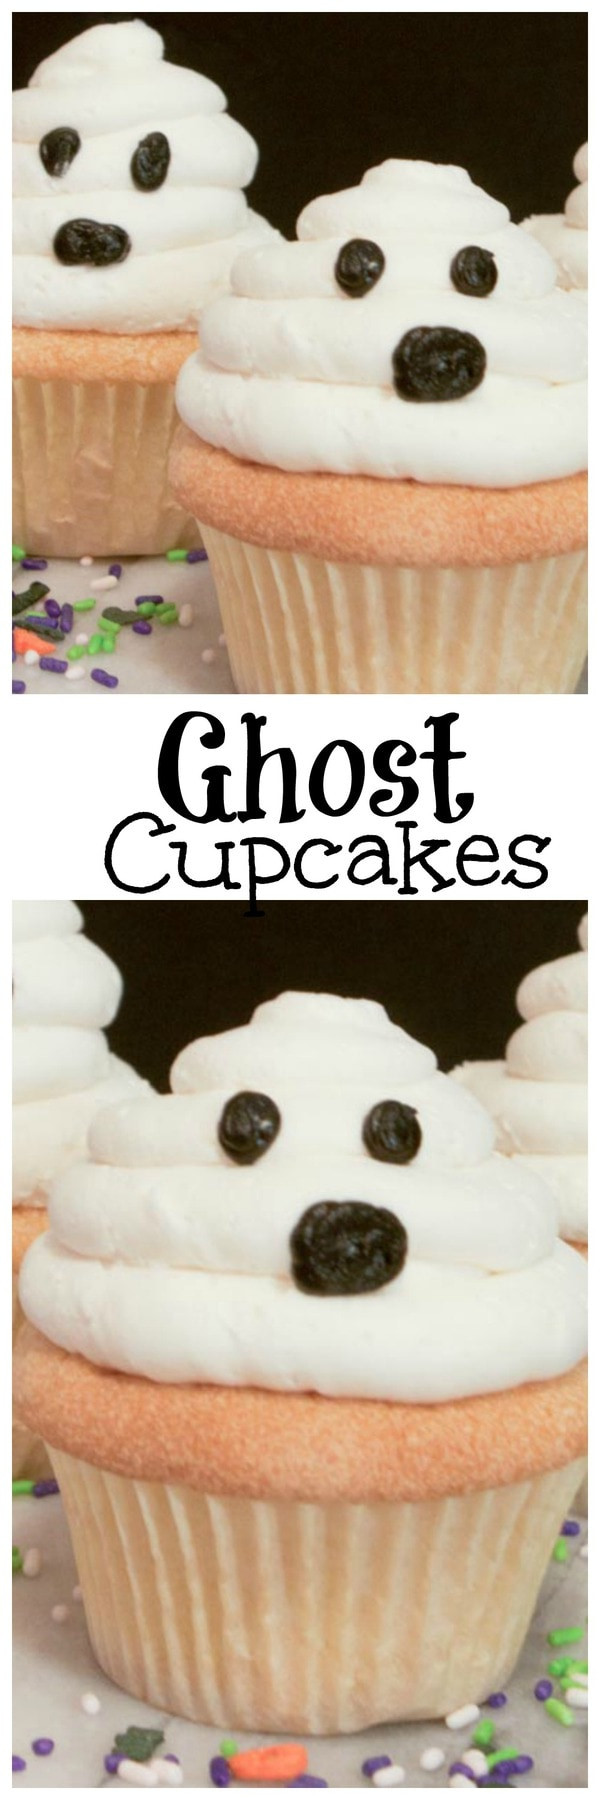 Halloween Cupcakes For Kids  Ghost Cupcakes Recipe